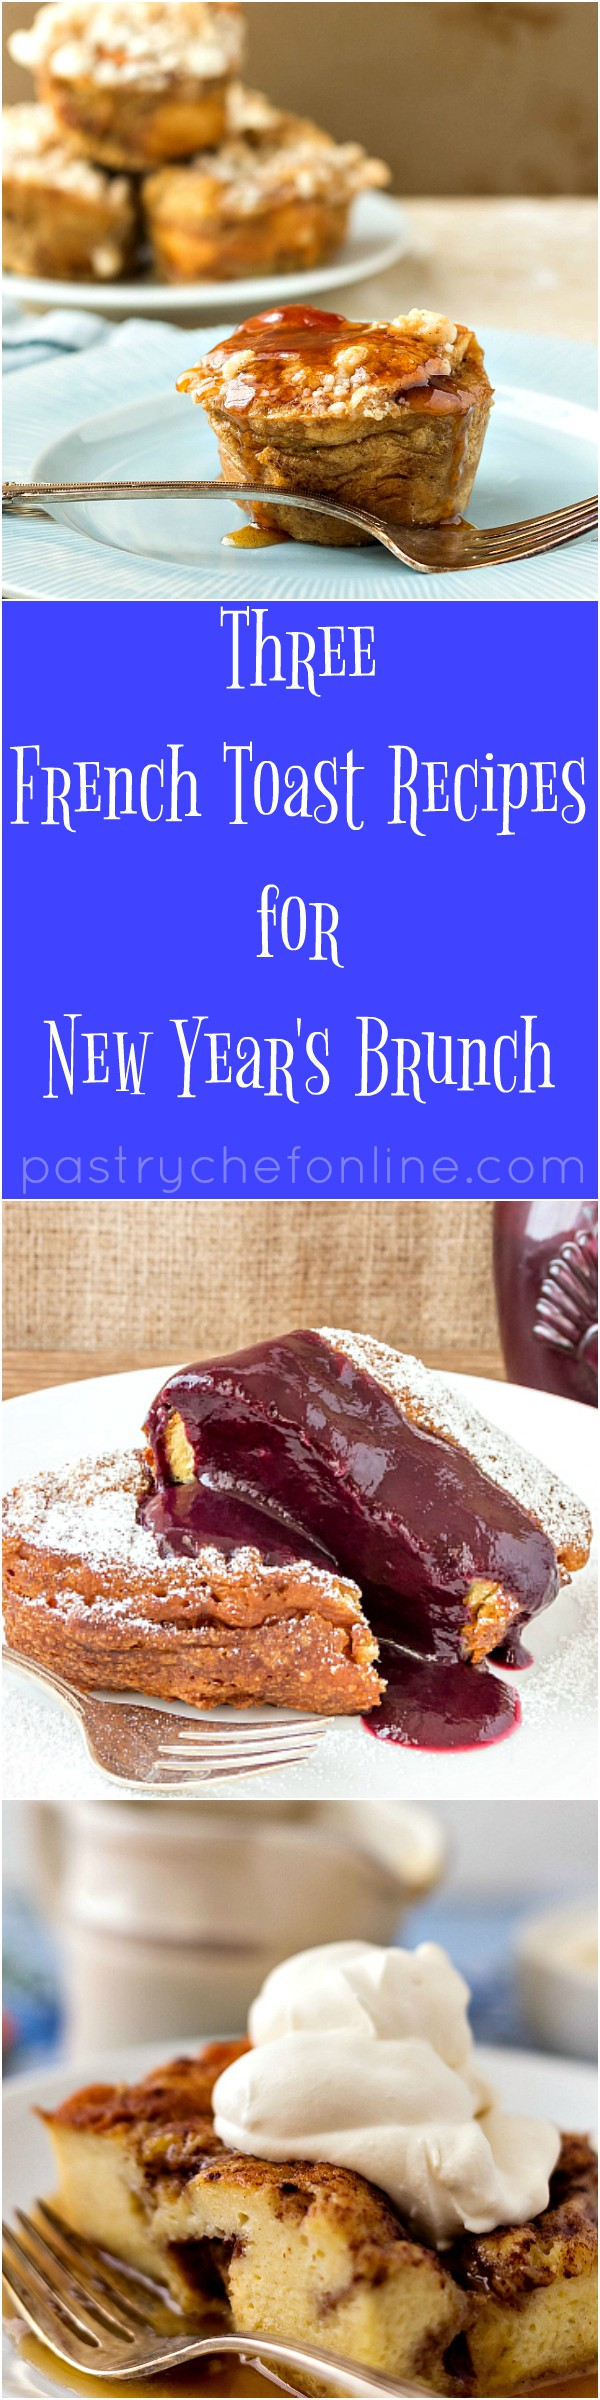 Three French Toast Recipes for New Year's Brunch, one is a baked French toast muffin recipe, one is a recipe for deep fried French toast, and the third is for making French toast with Moravian Sugar Cake. Enjoy! | pastrychefonline.com